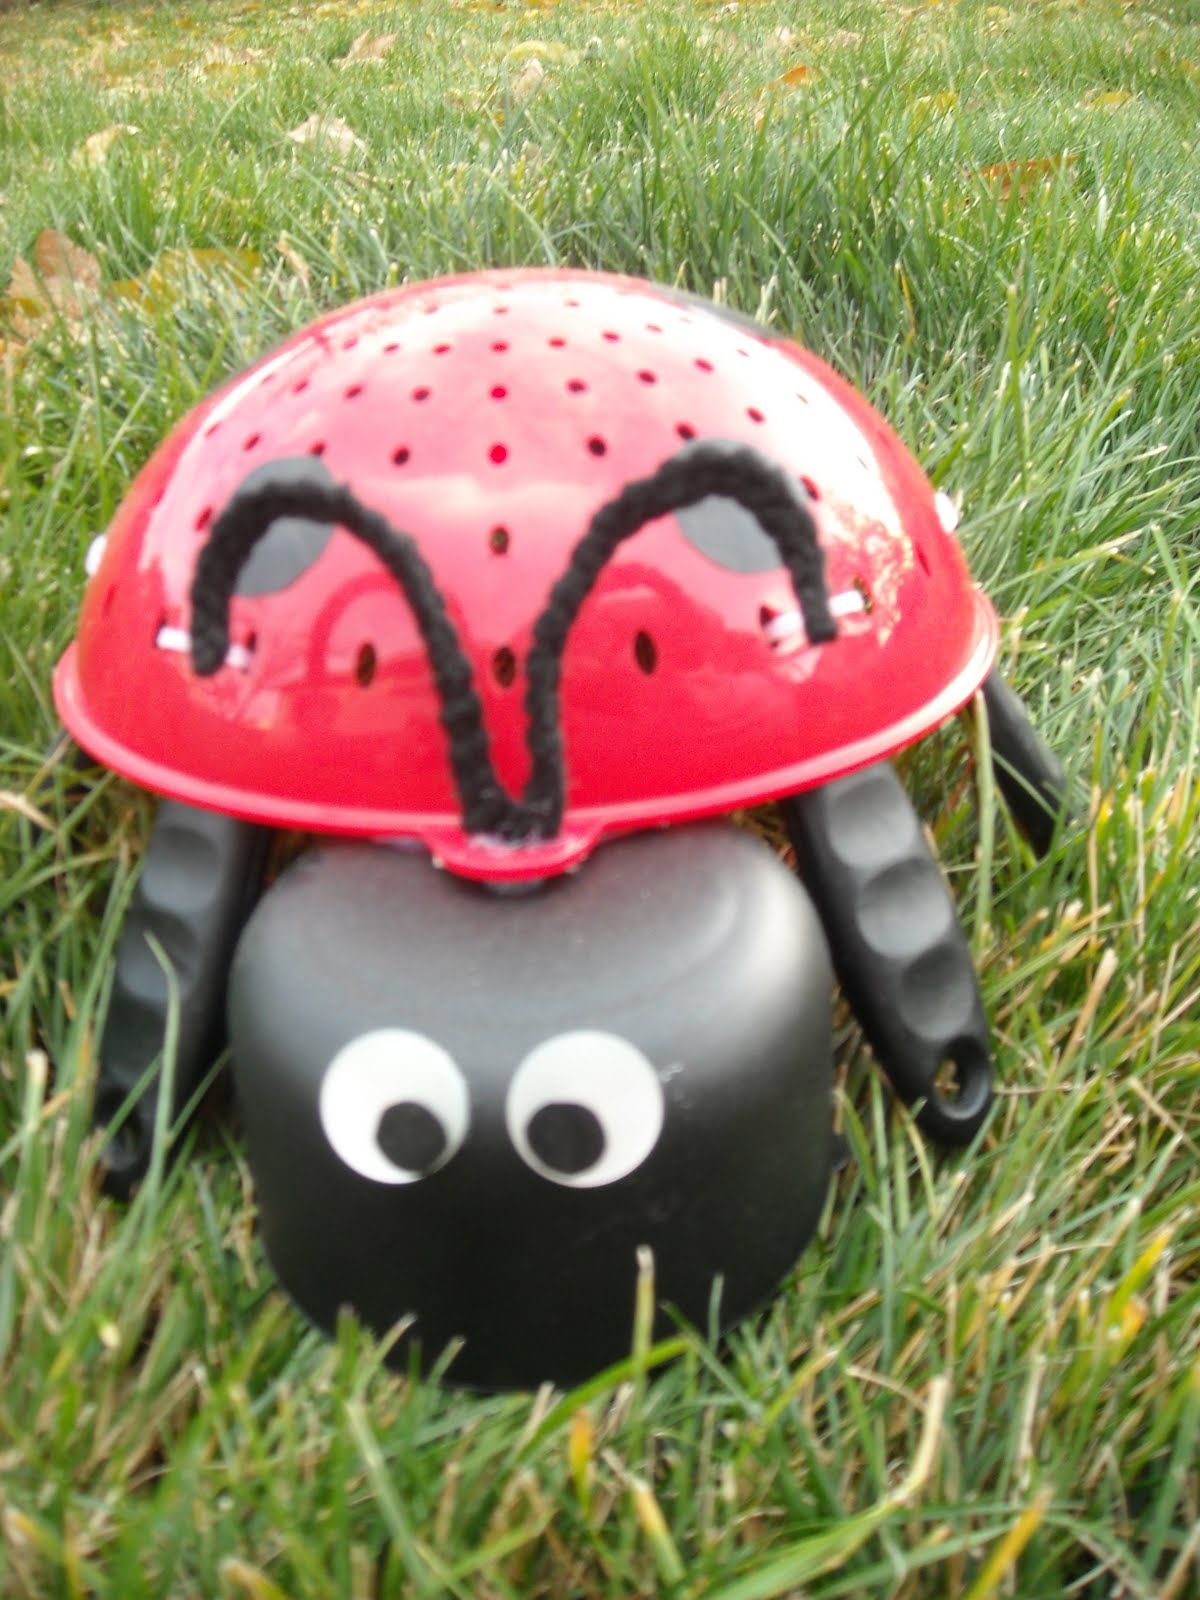 Yard Art Ideas http://sarahatbeyondallmeasure.blogspot.com/2009/11/lady-bug-yard-art-tutorial.html